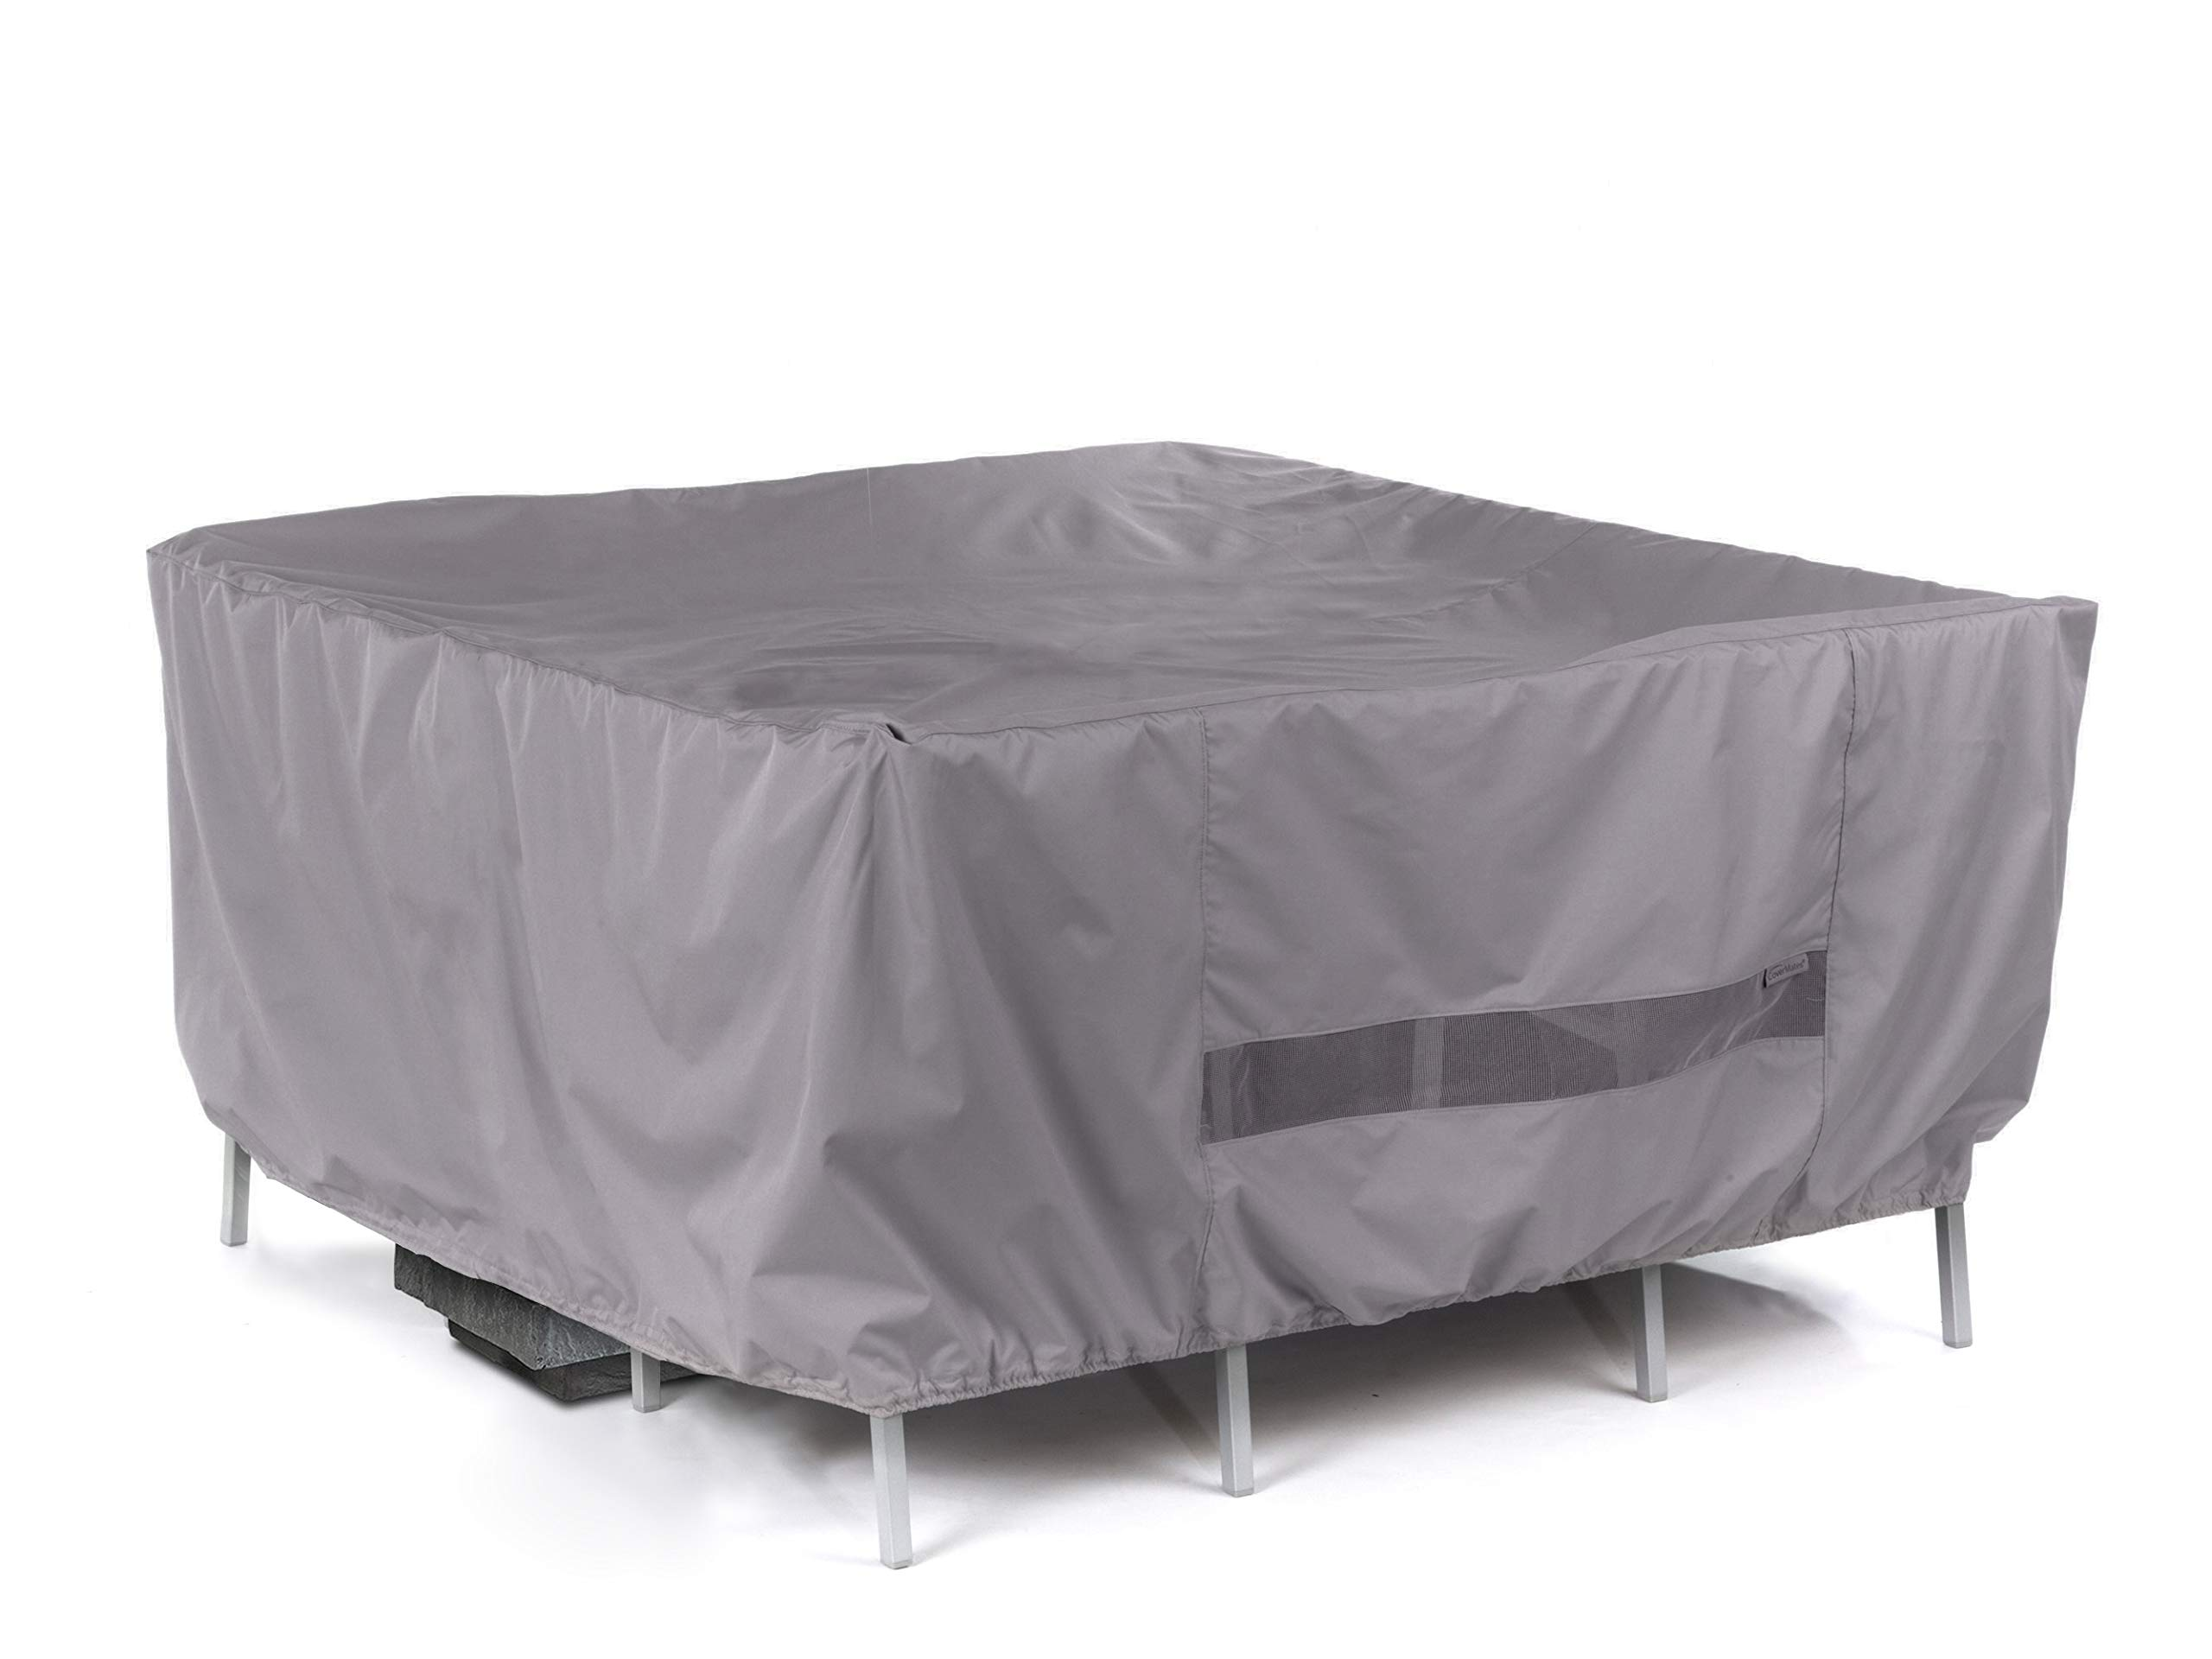 Covermates - Square Firepit/Chair Set Cover - 66W x 66D x 30H - Elite Collection - 3 YR Warranty - Year Around Protection - Charcoal by Covermates